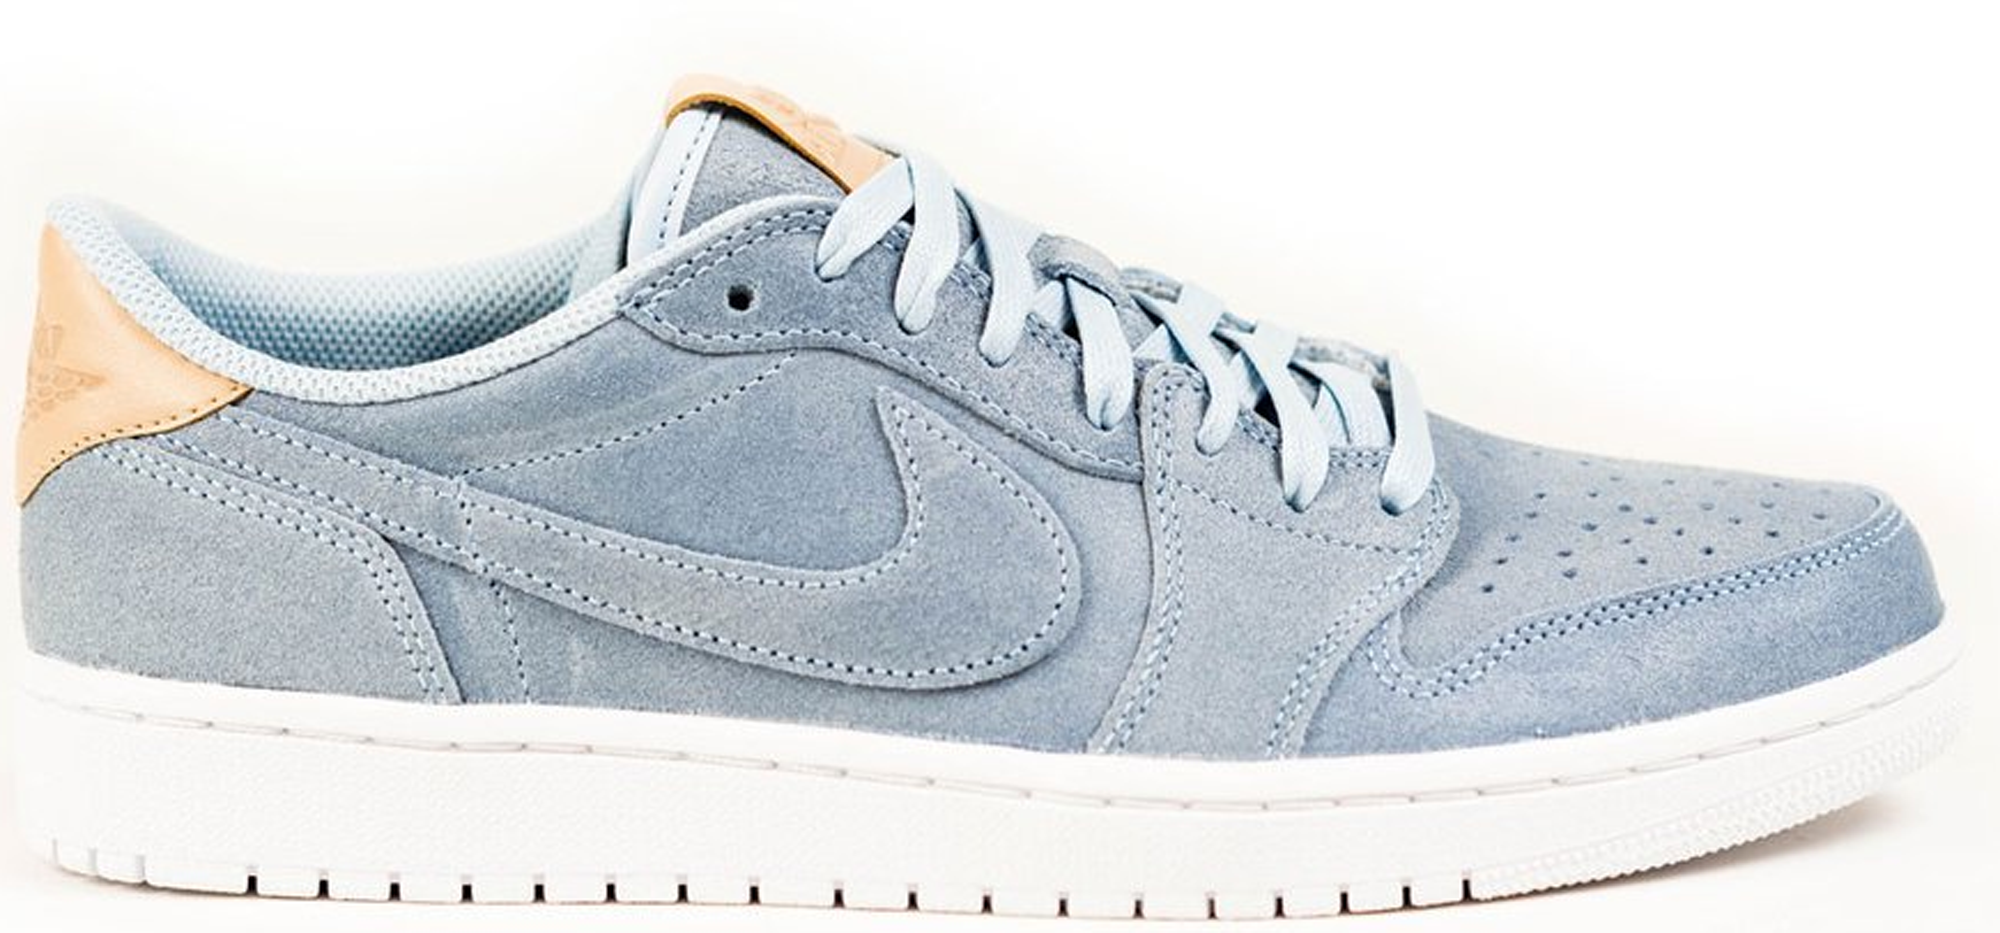 Jordan 1 Retro Low OG Ice Blue